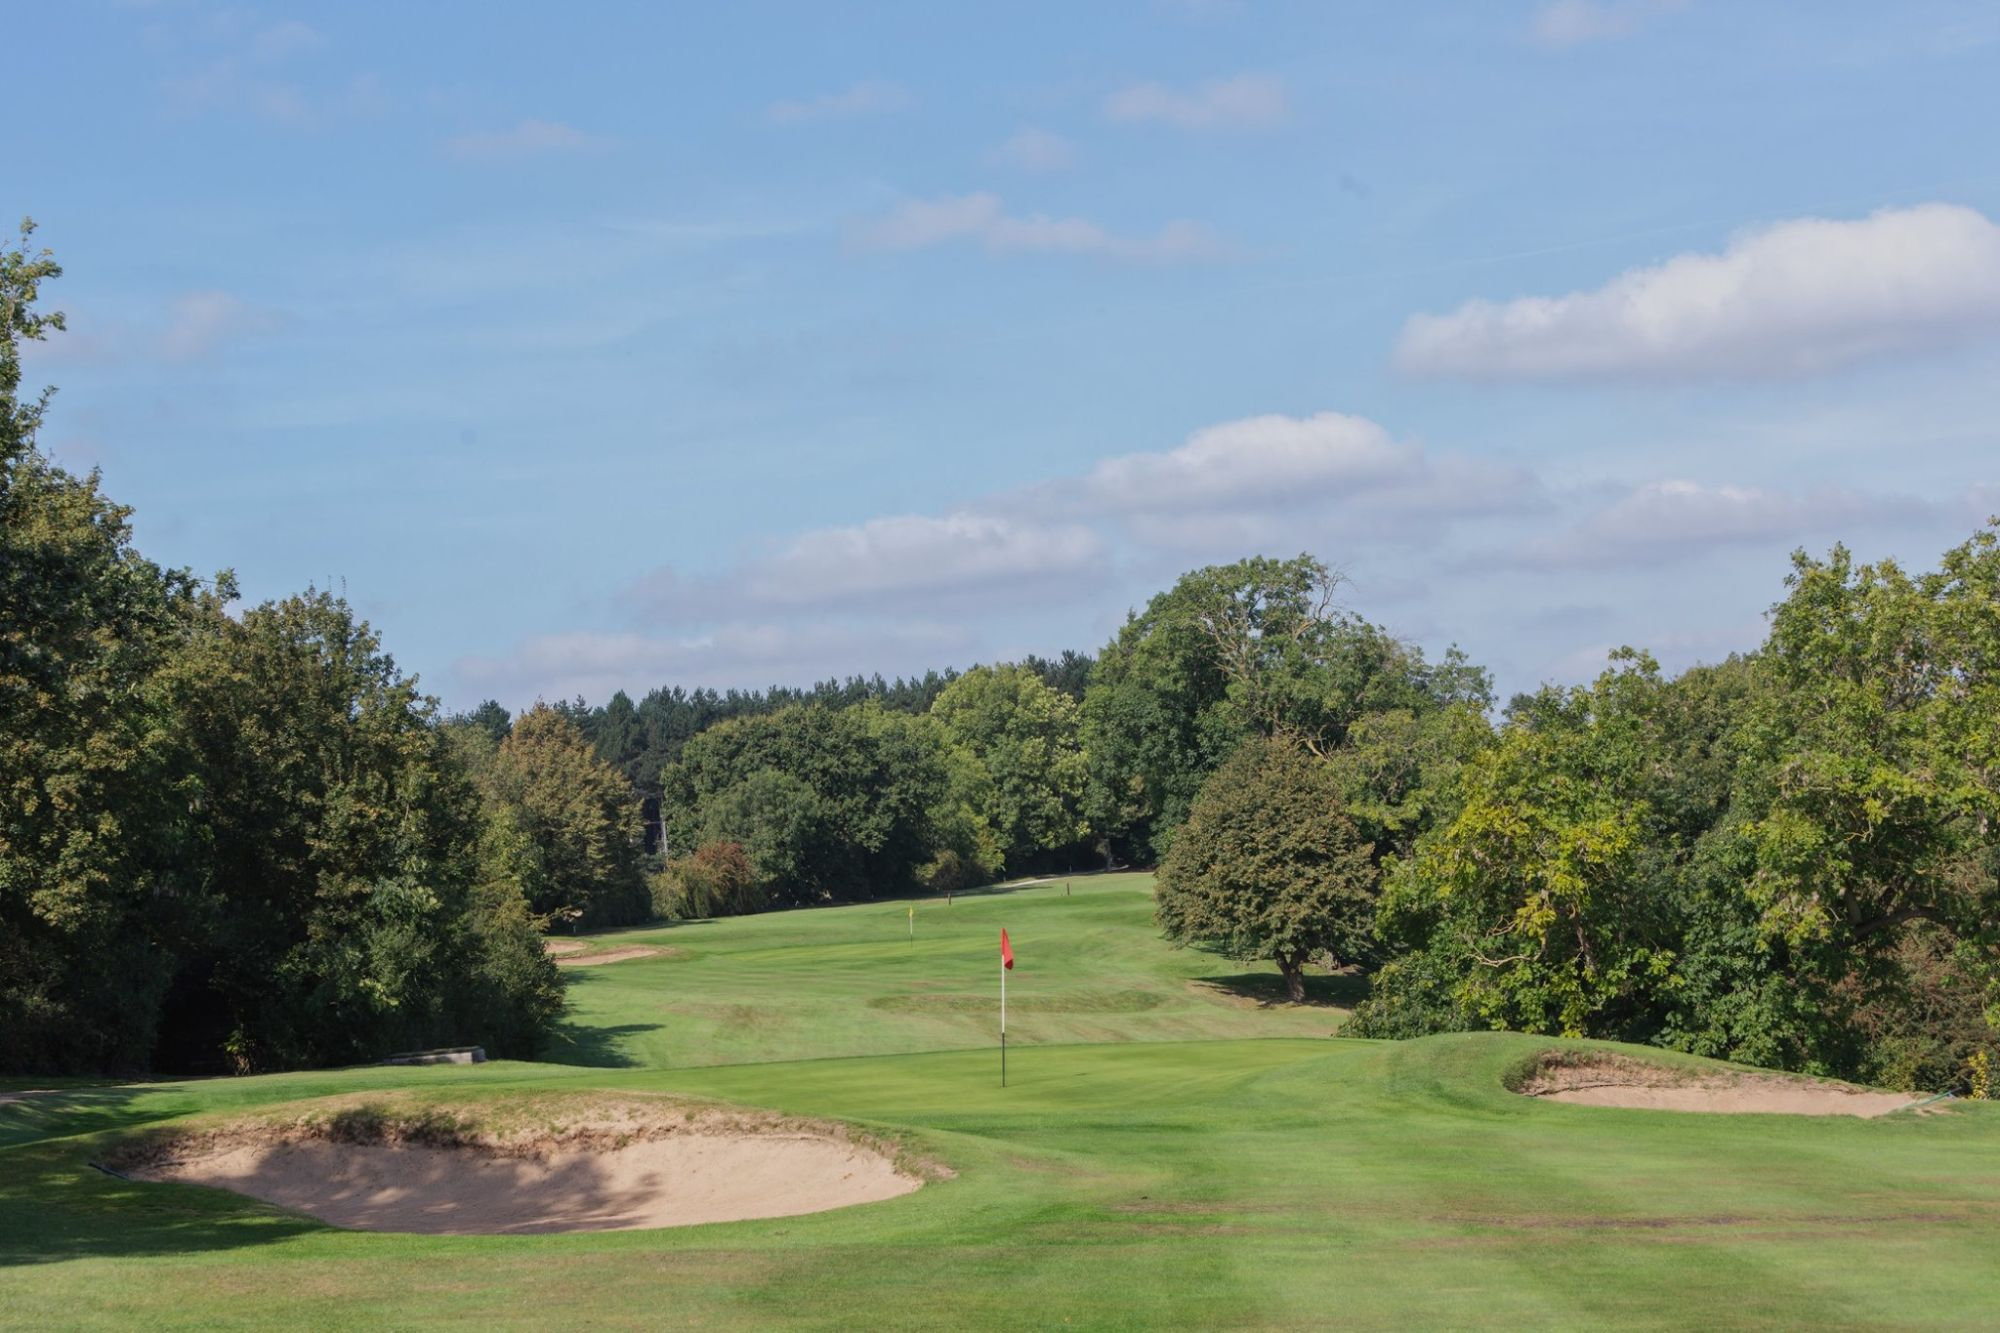 Rushcliffe Golf Clun